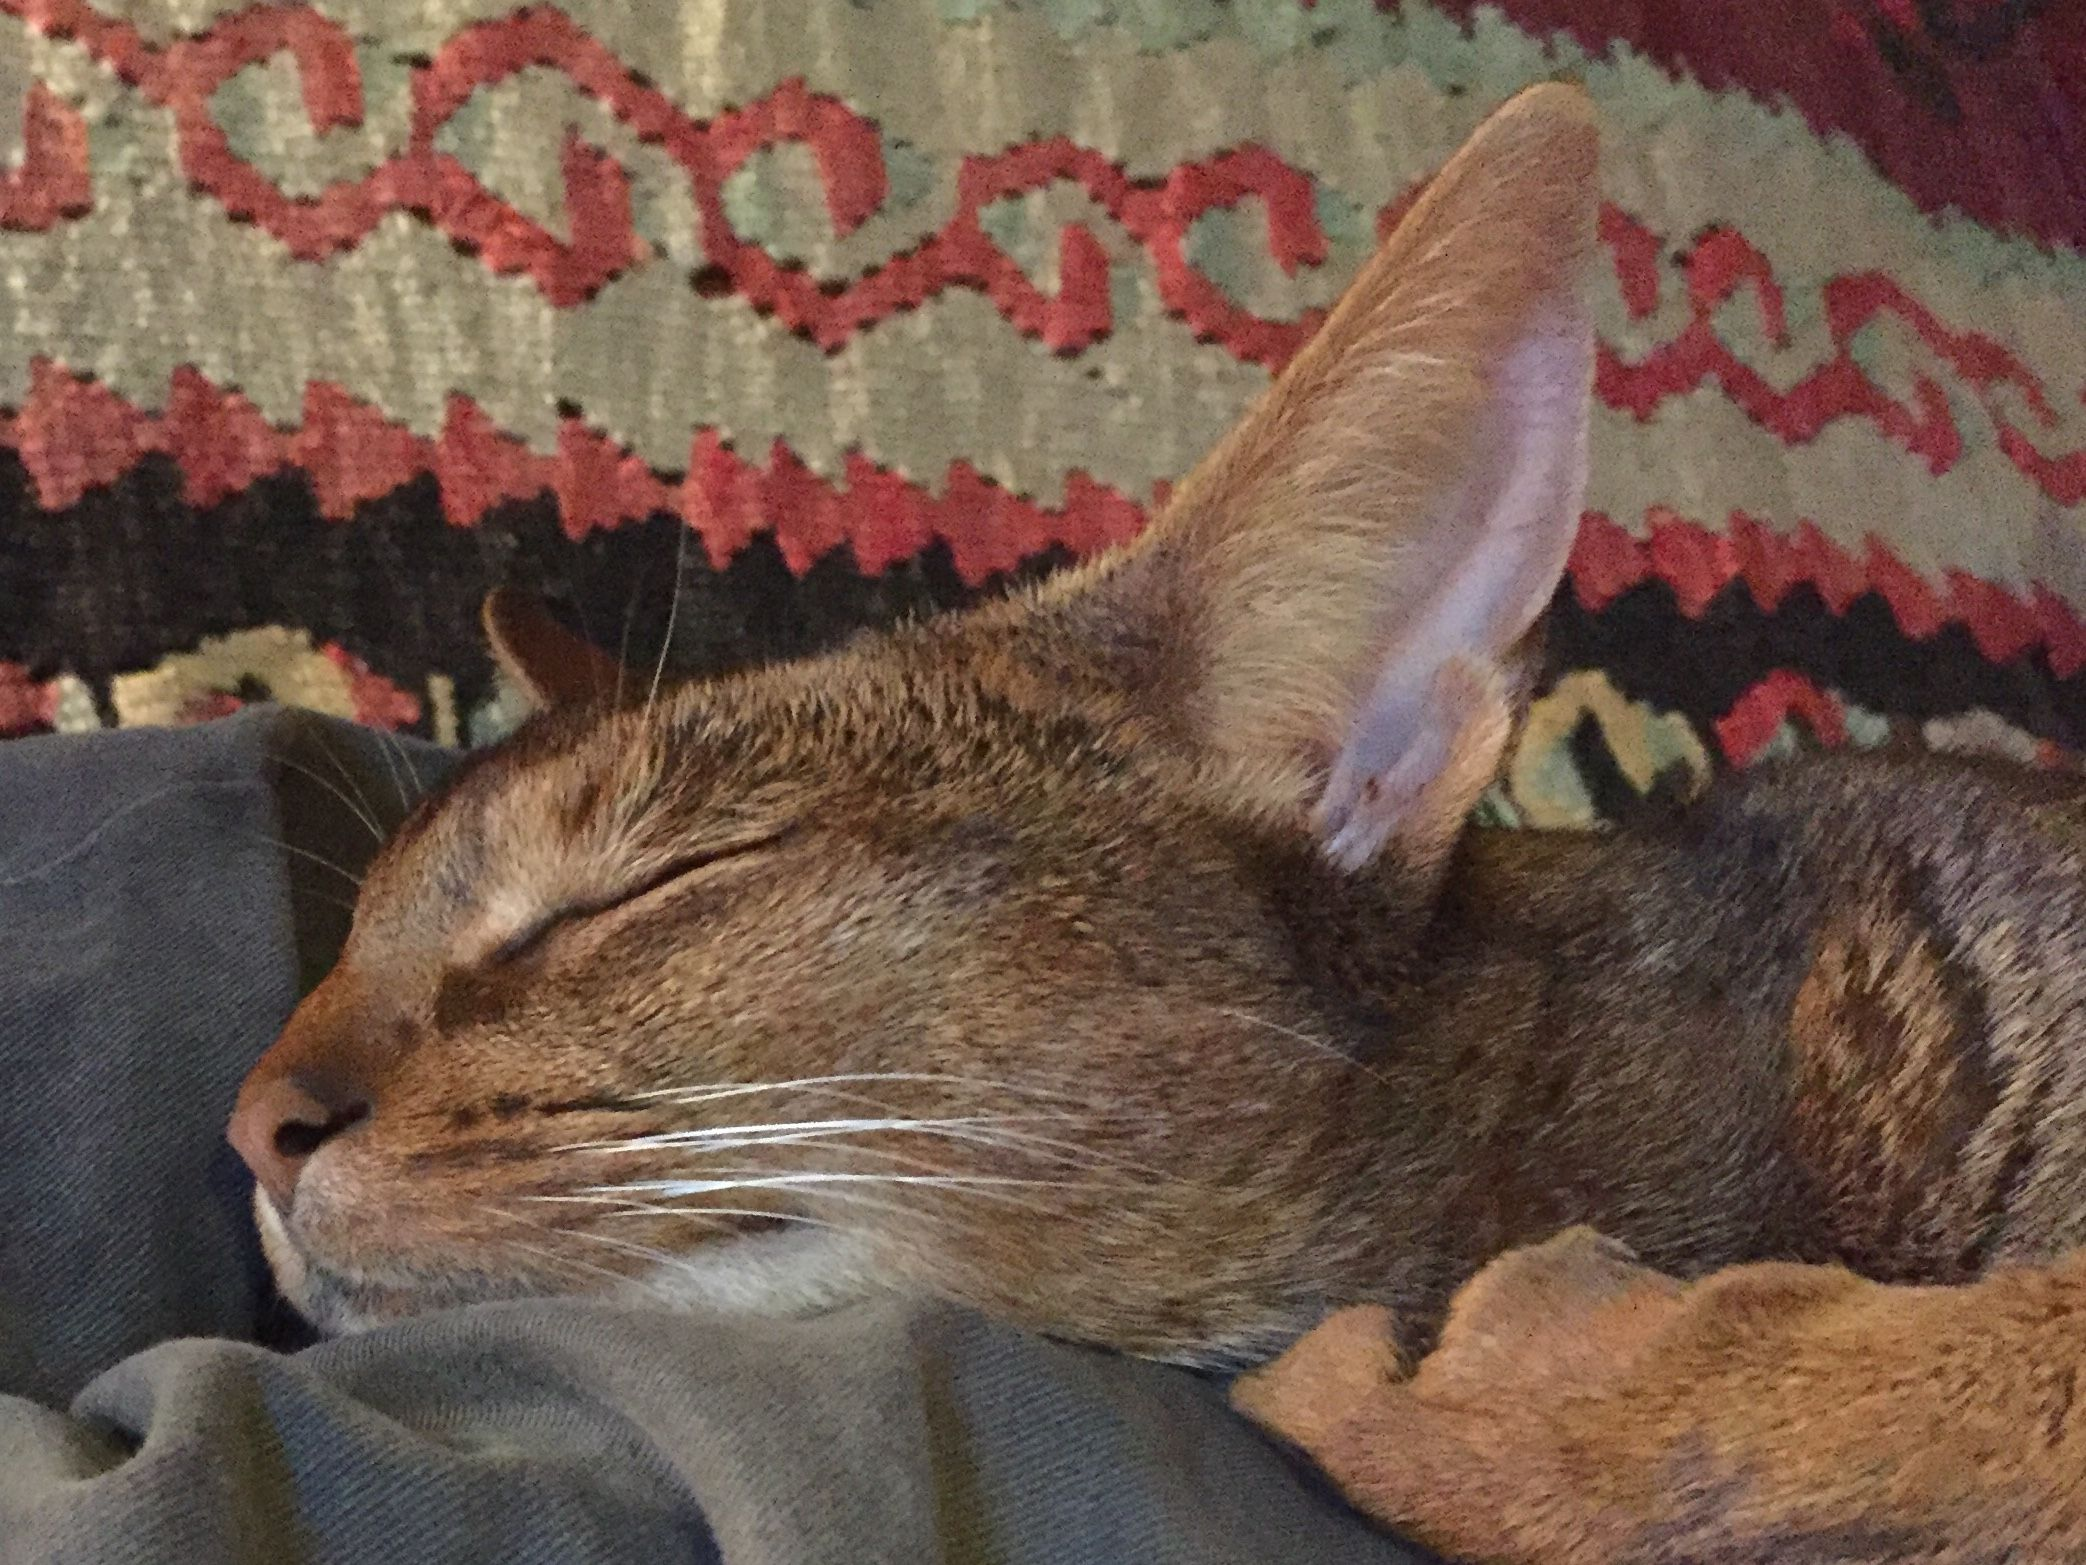 Pin by Becky Haugen on Abyssinians | Pinterest | Abyssinian, Cat ...